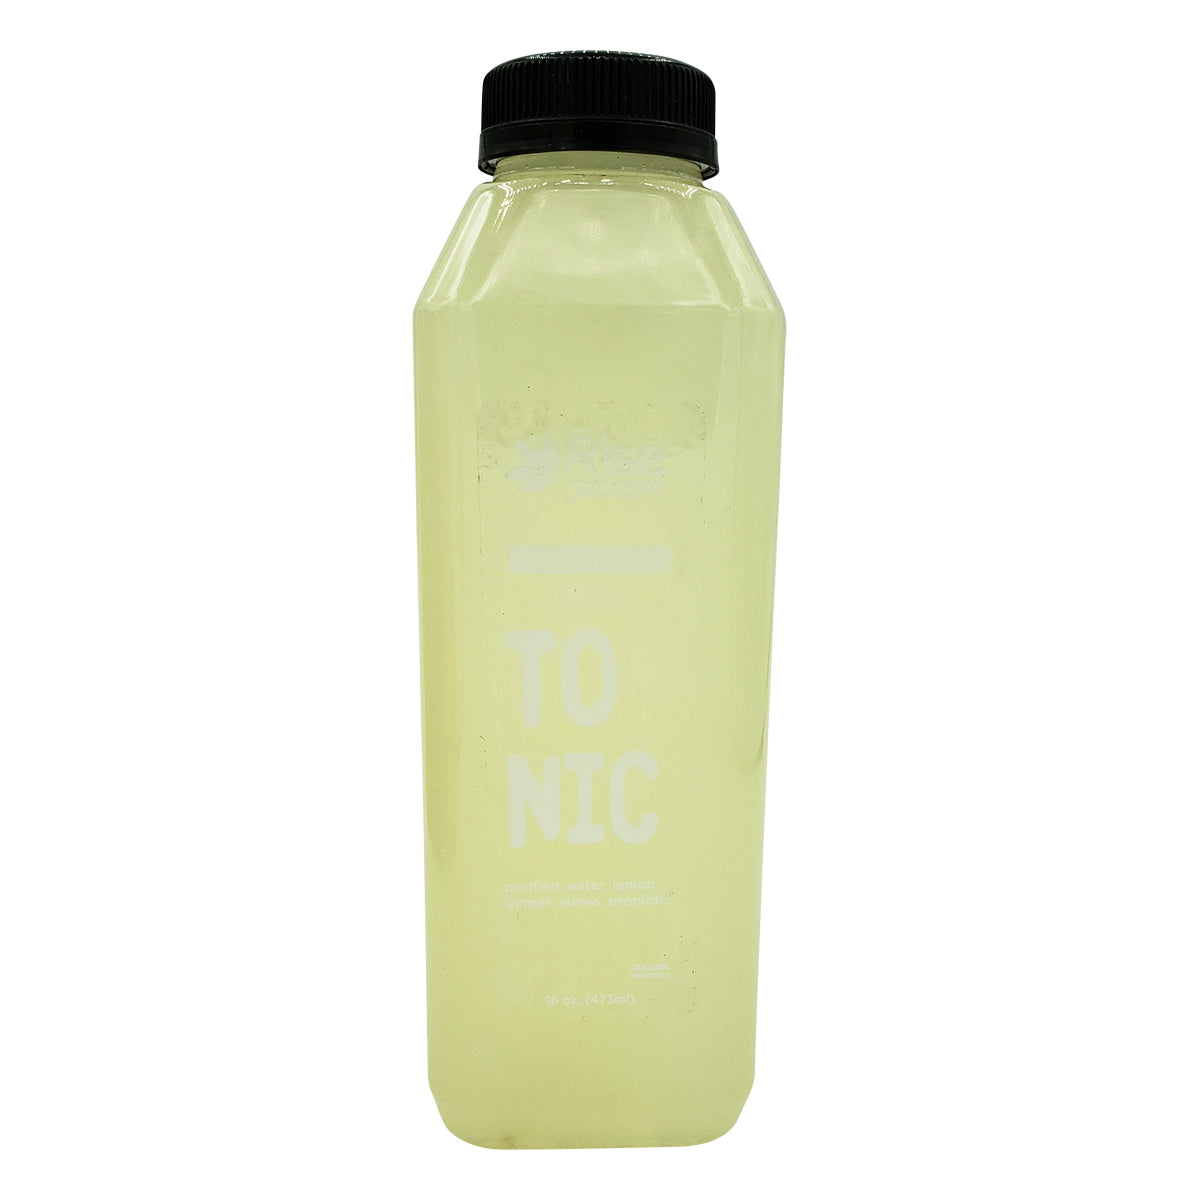 Rise Juicery Tonic16 oz